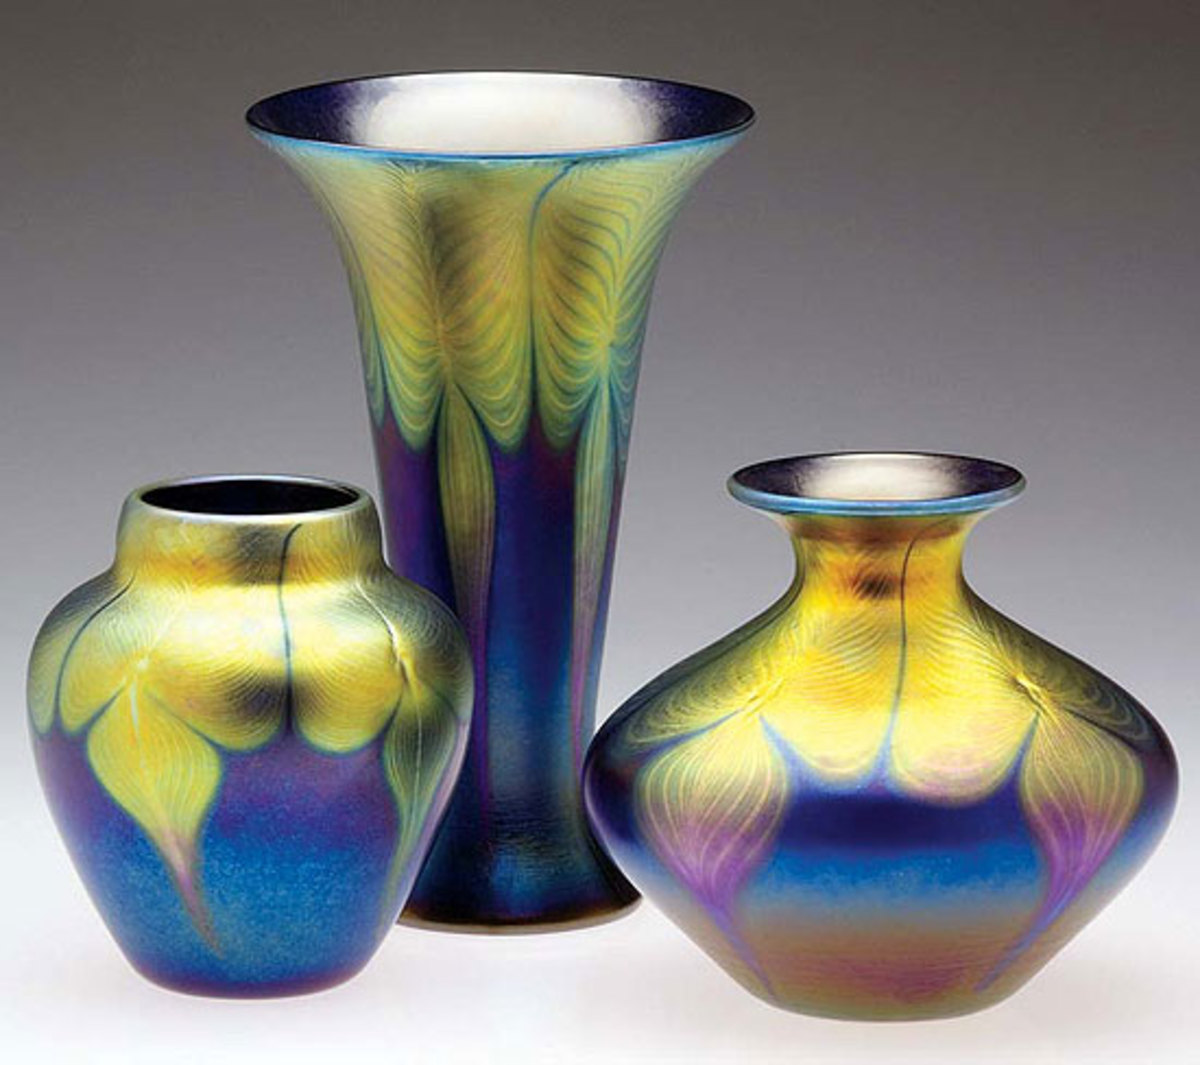 A trio of iridescent art-glass vases from Lundberg Studios.